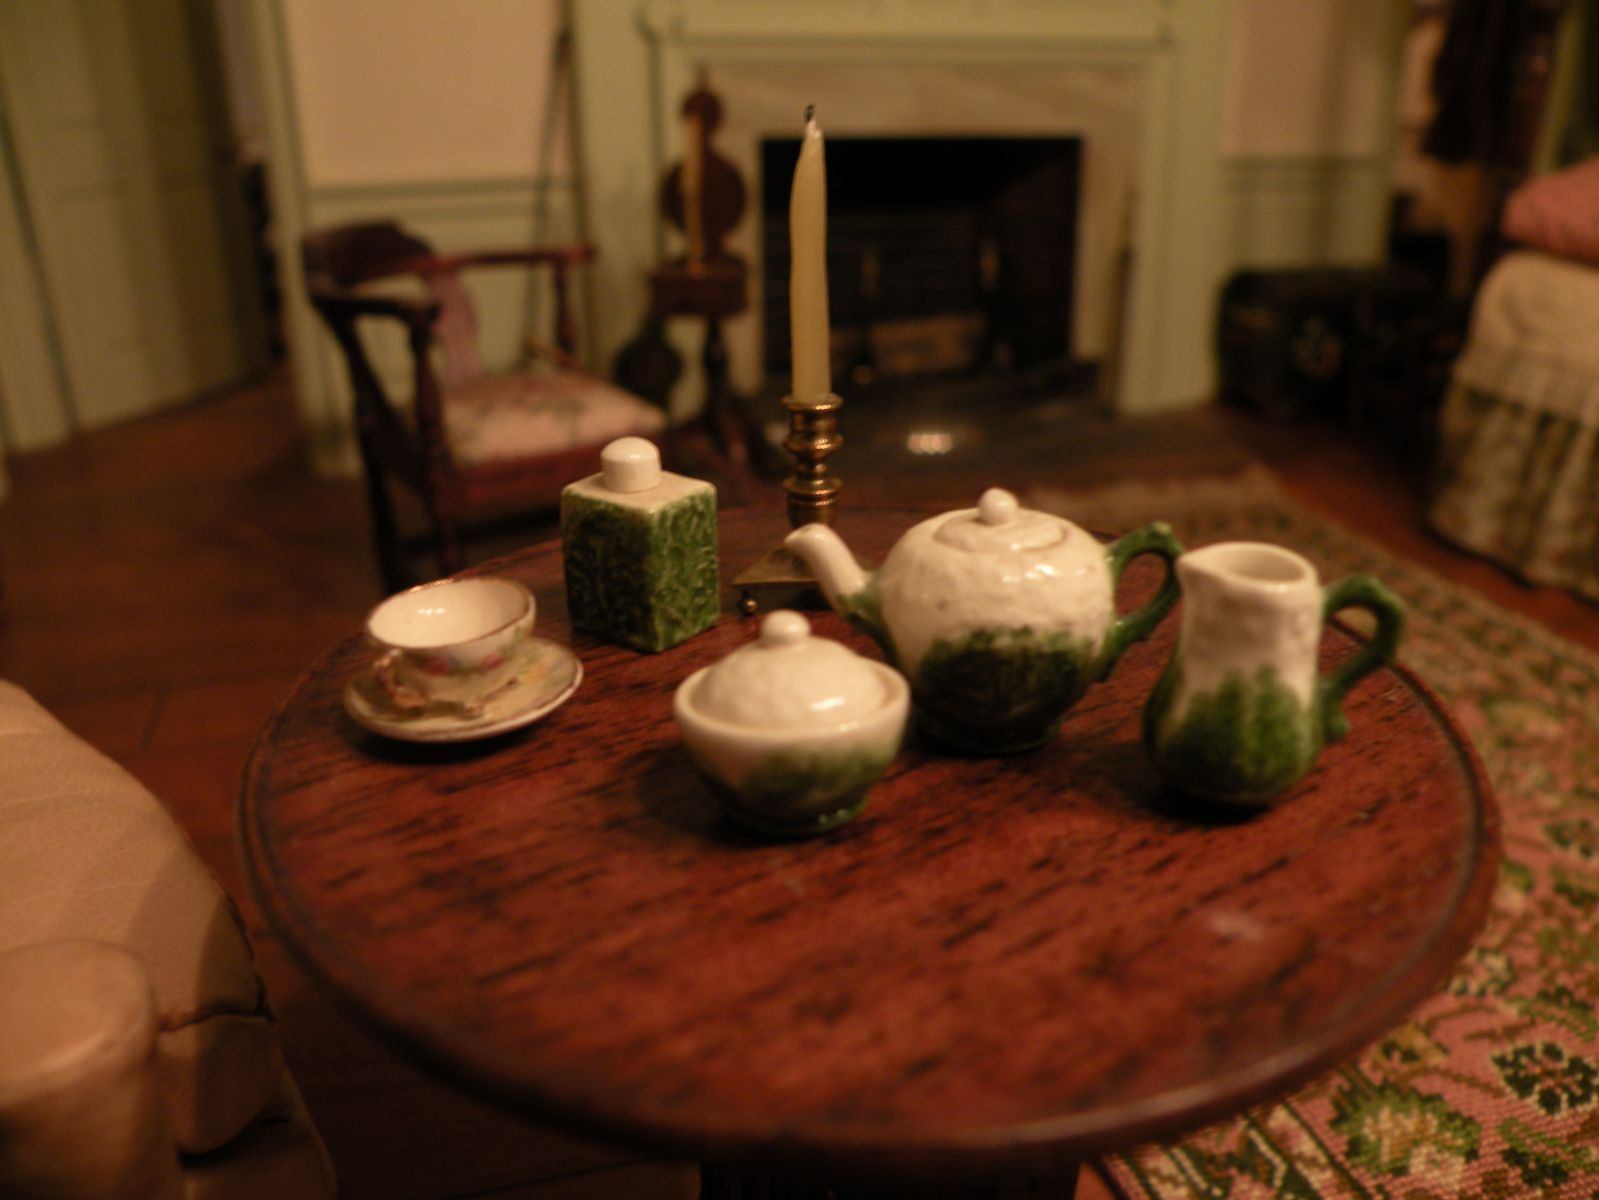 Cauliflower Tea Set by Lynn Collins